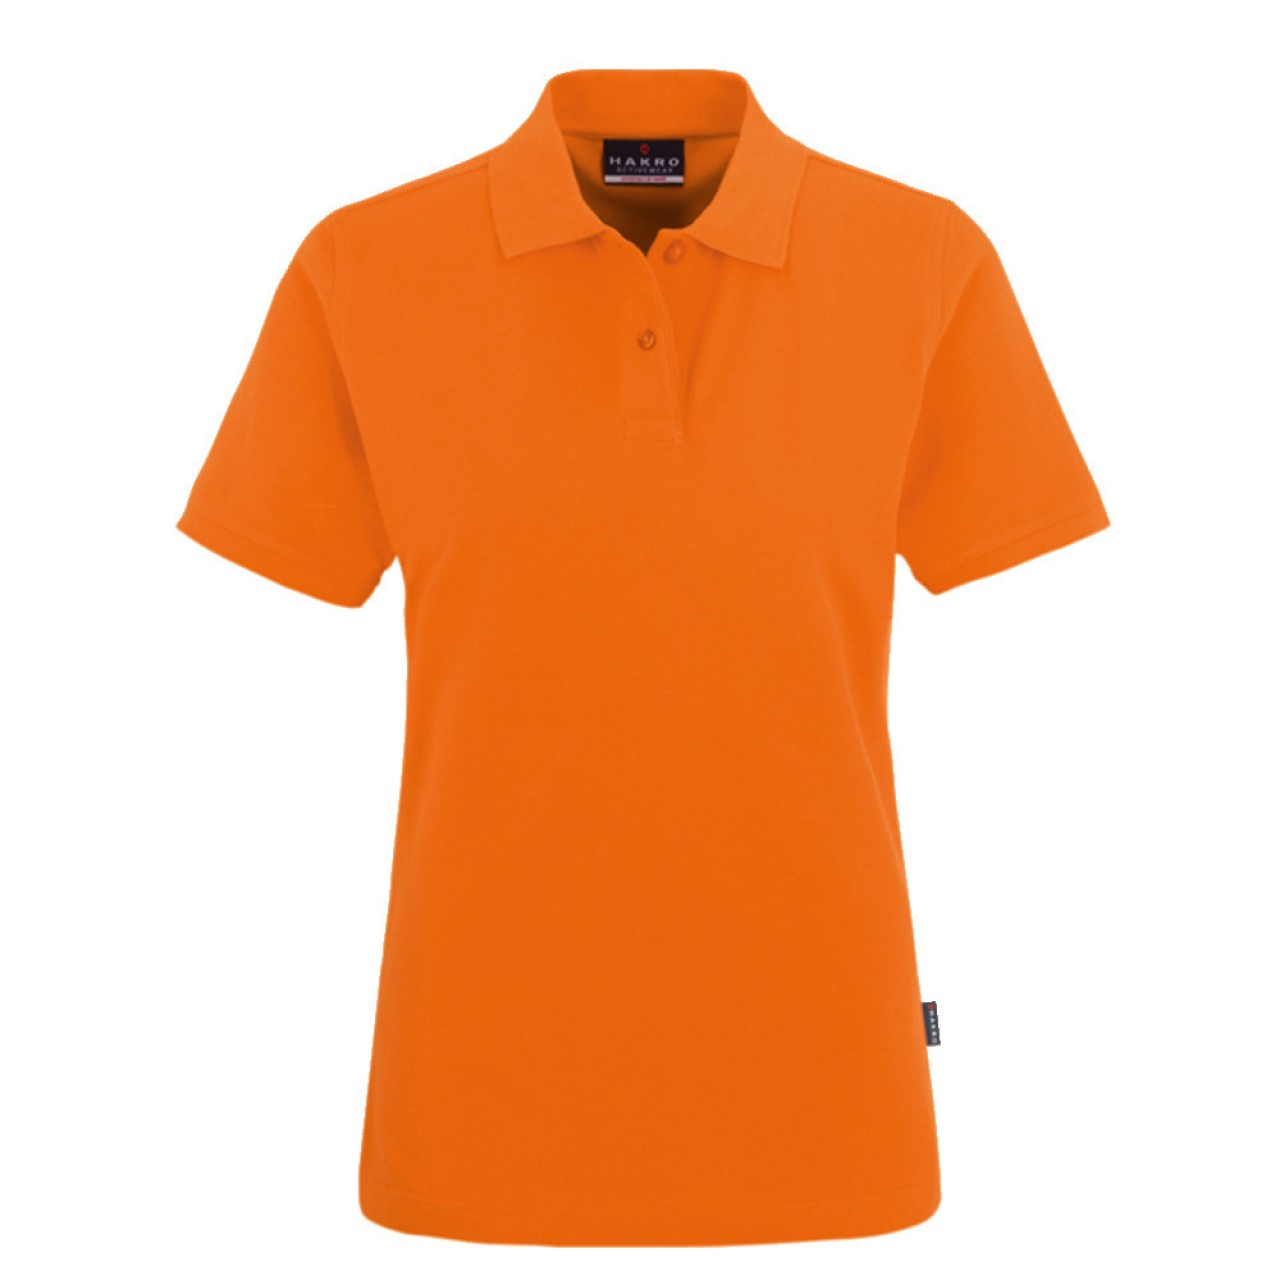 Damen Polo-Shirt Top orange